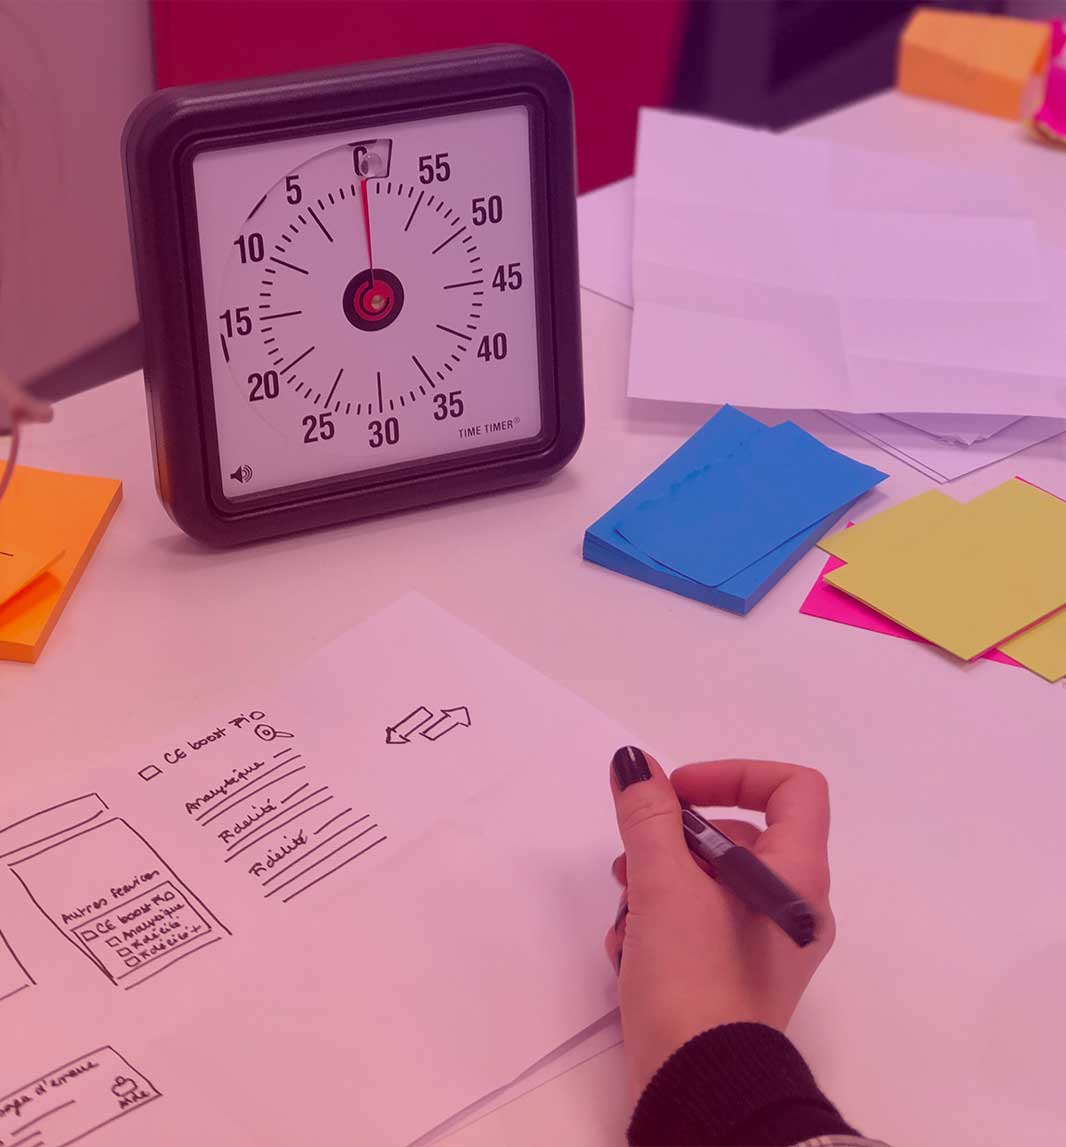 InfleXsys ateliers design thinking conception application mobile